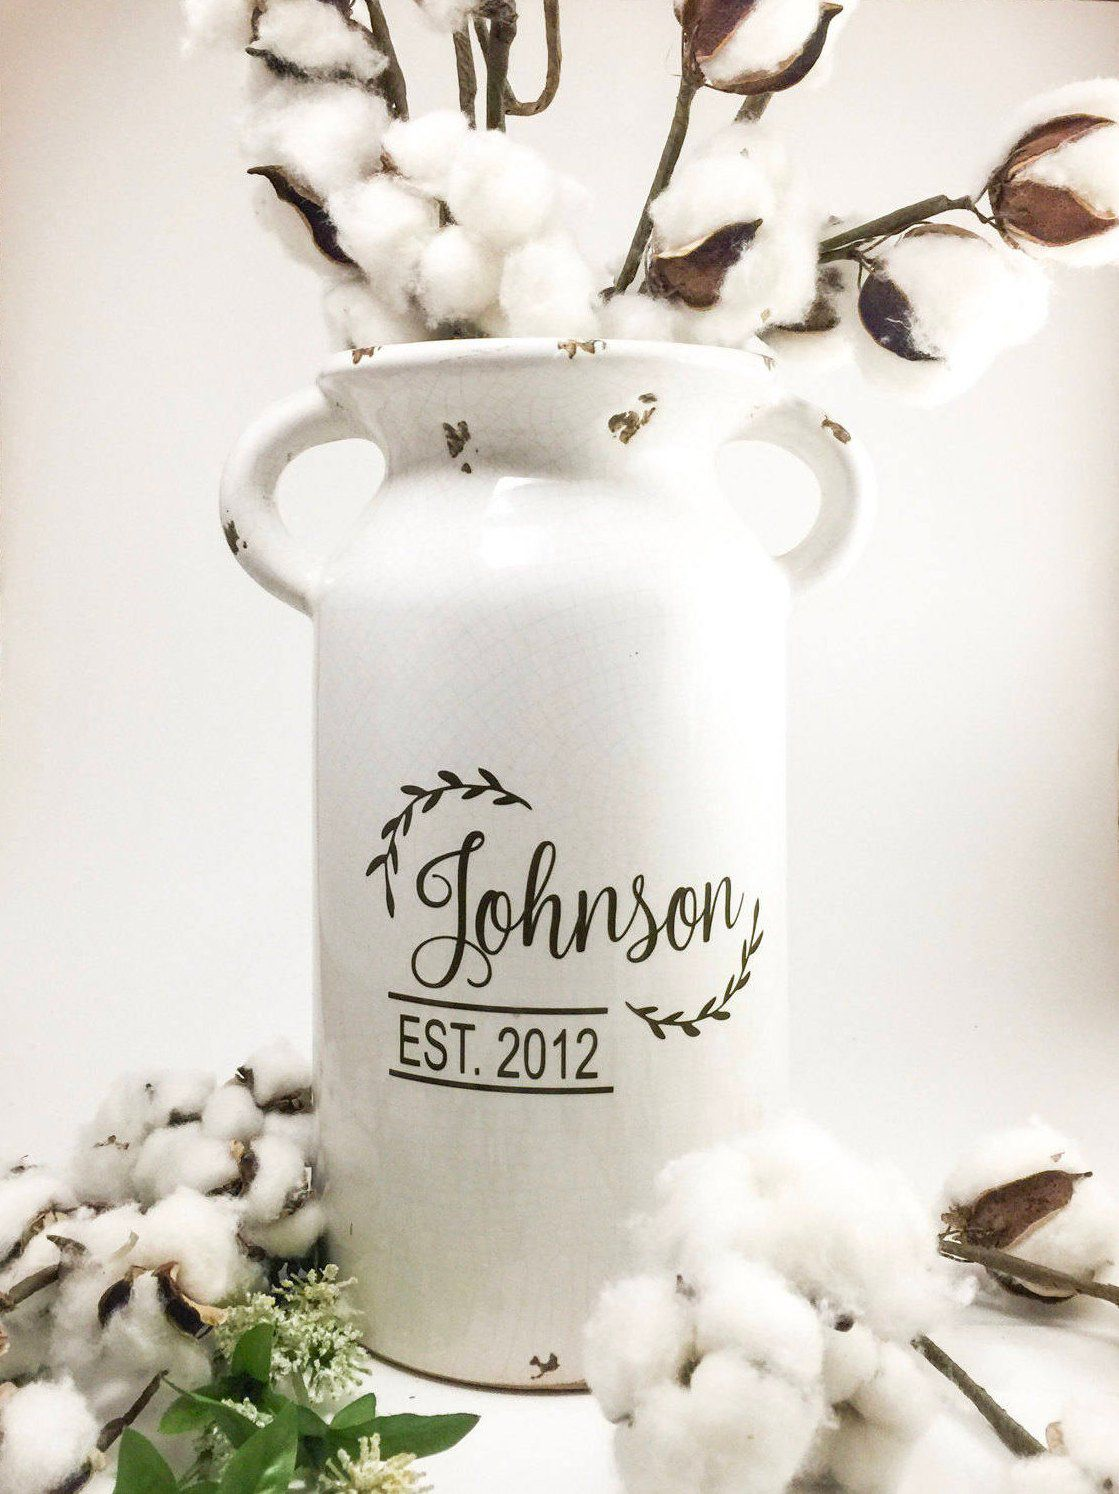 Farmhouse style Milk Can, Personalized Ceramic Vase for